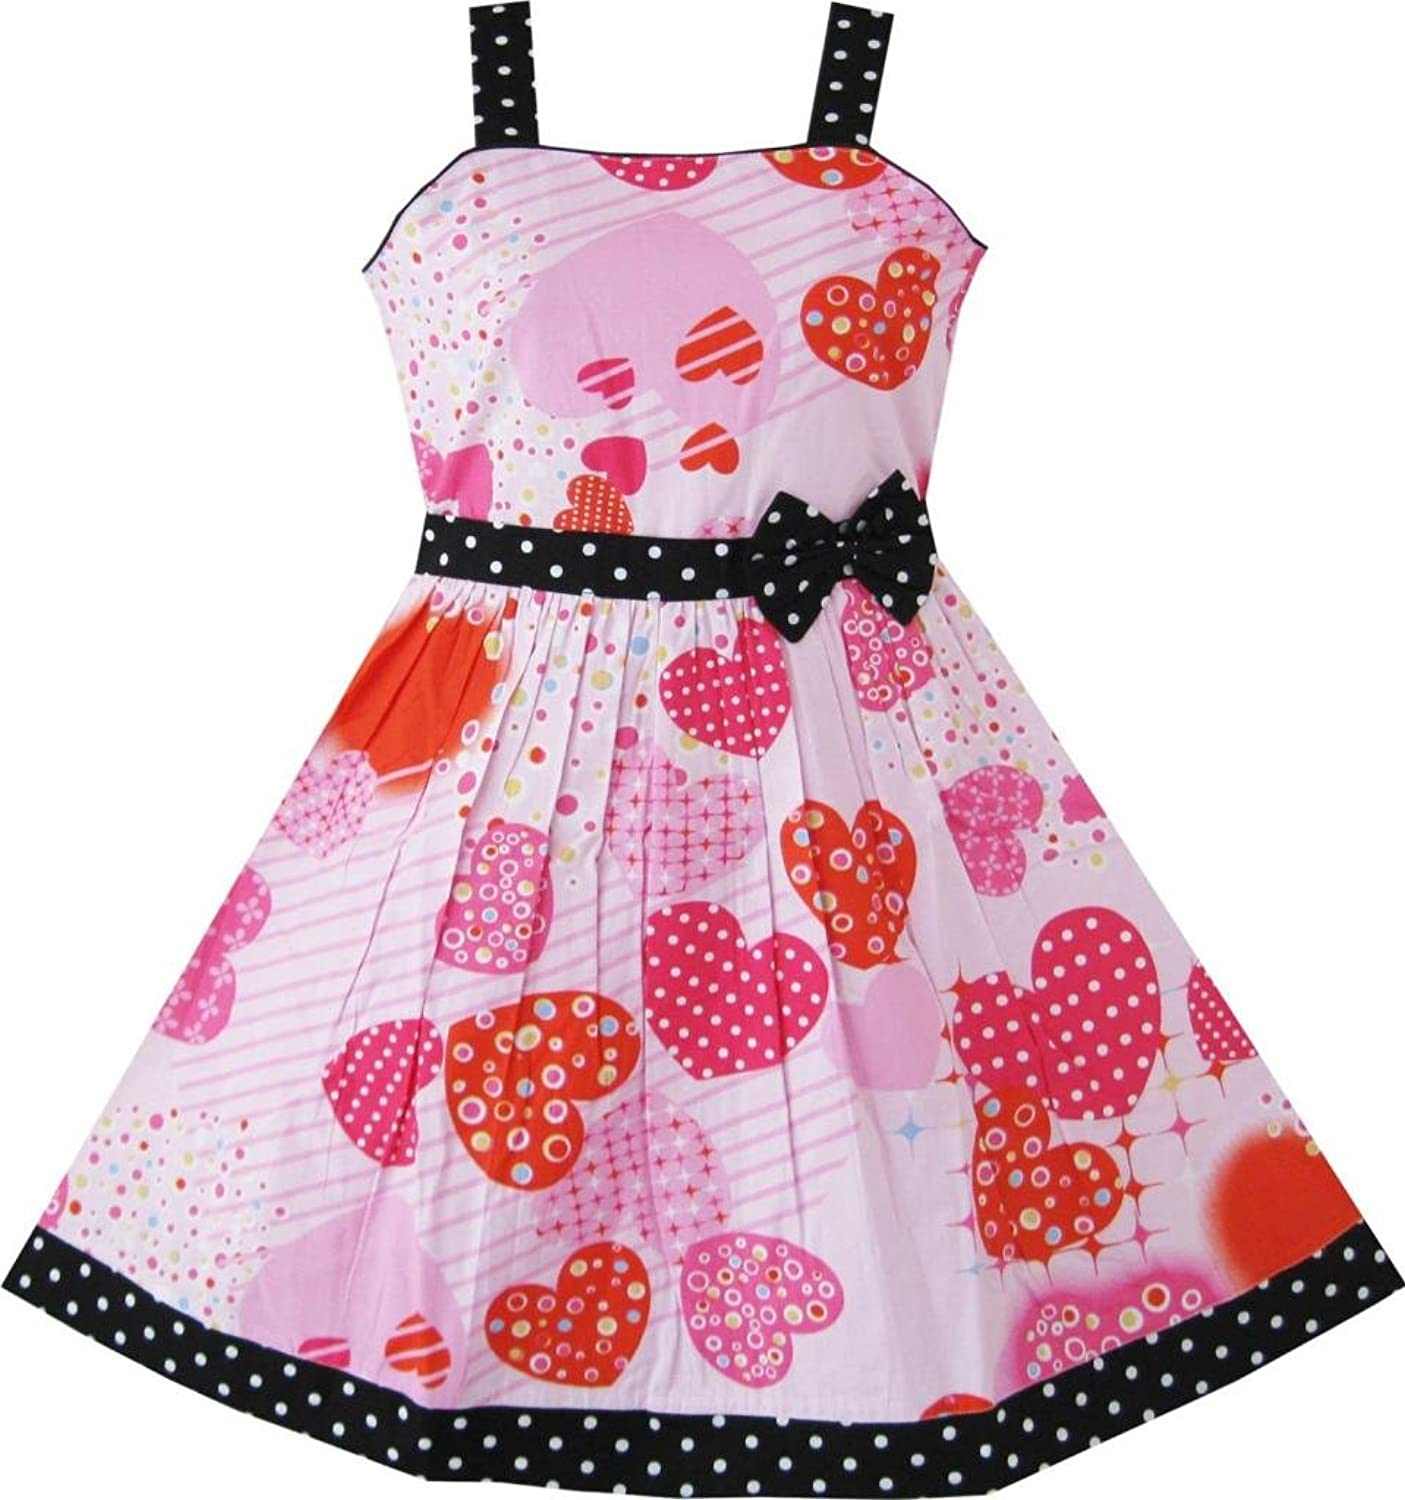 Girls Pink Heart Print Bow Tie Party Sundress Kids Clothes Sz 4-12